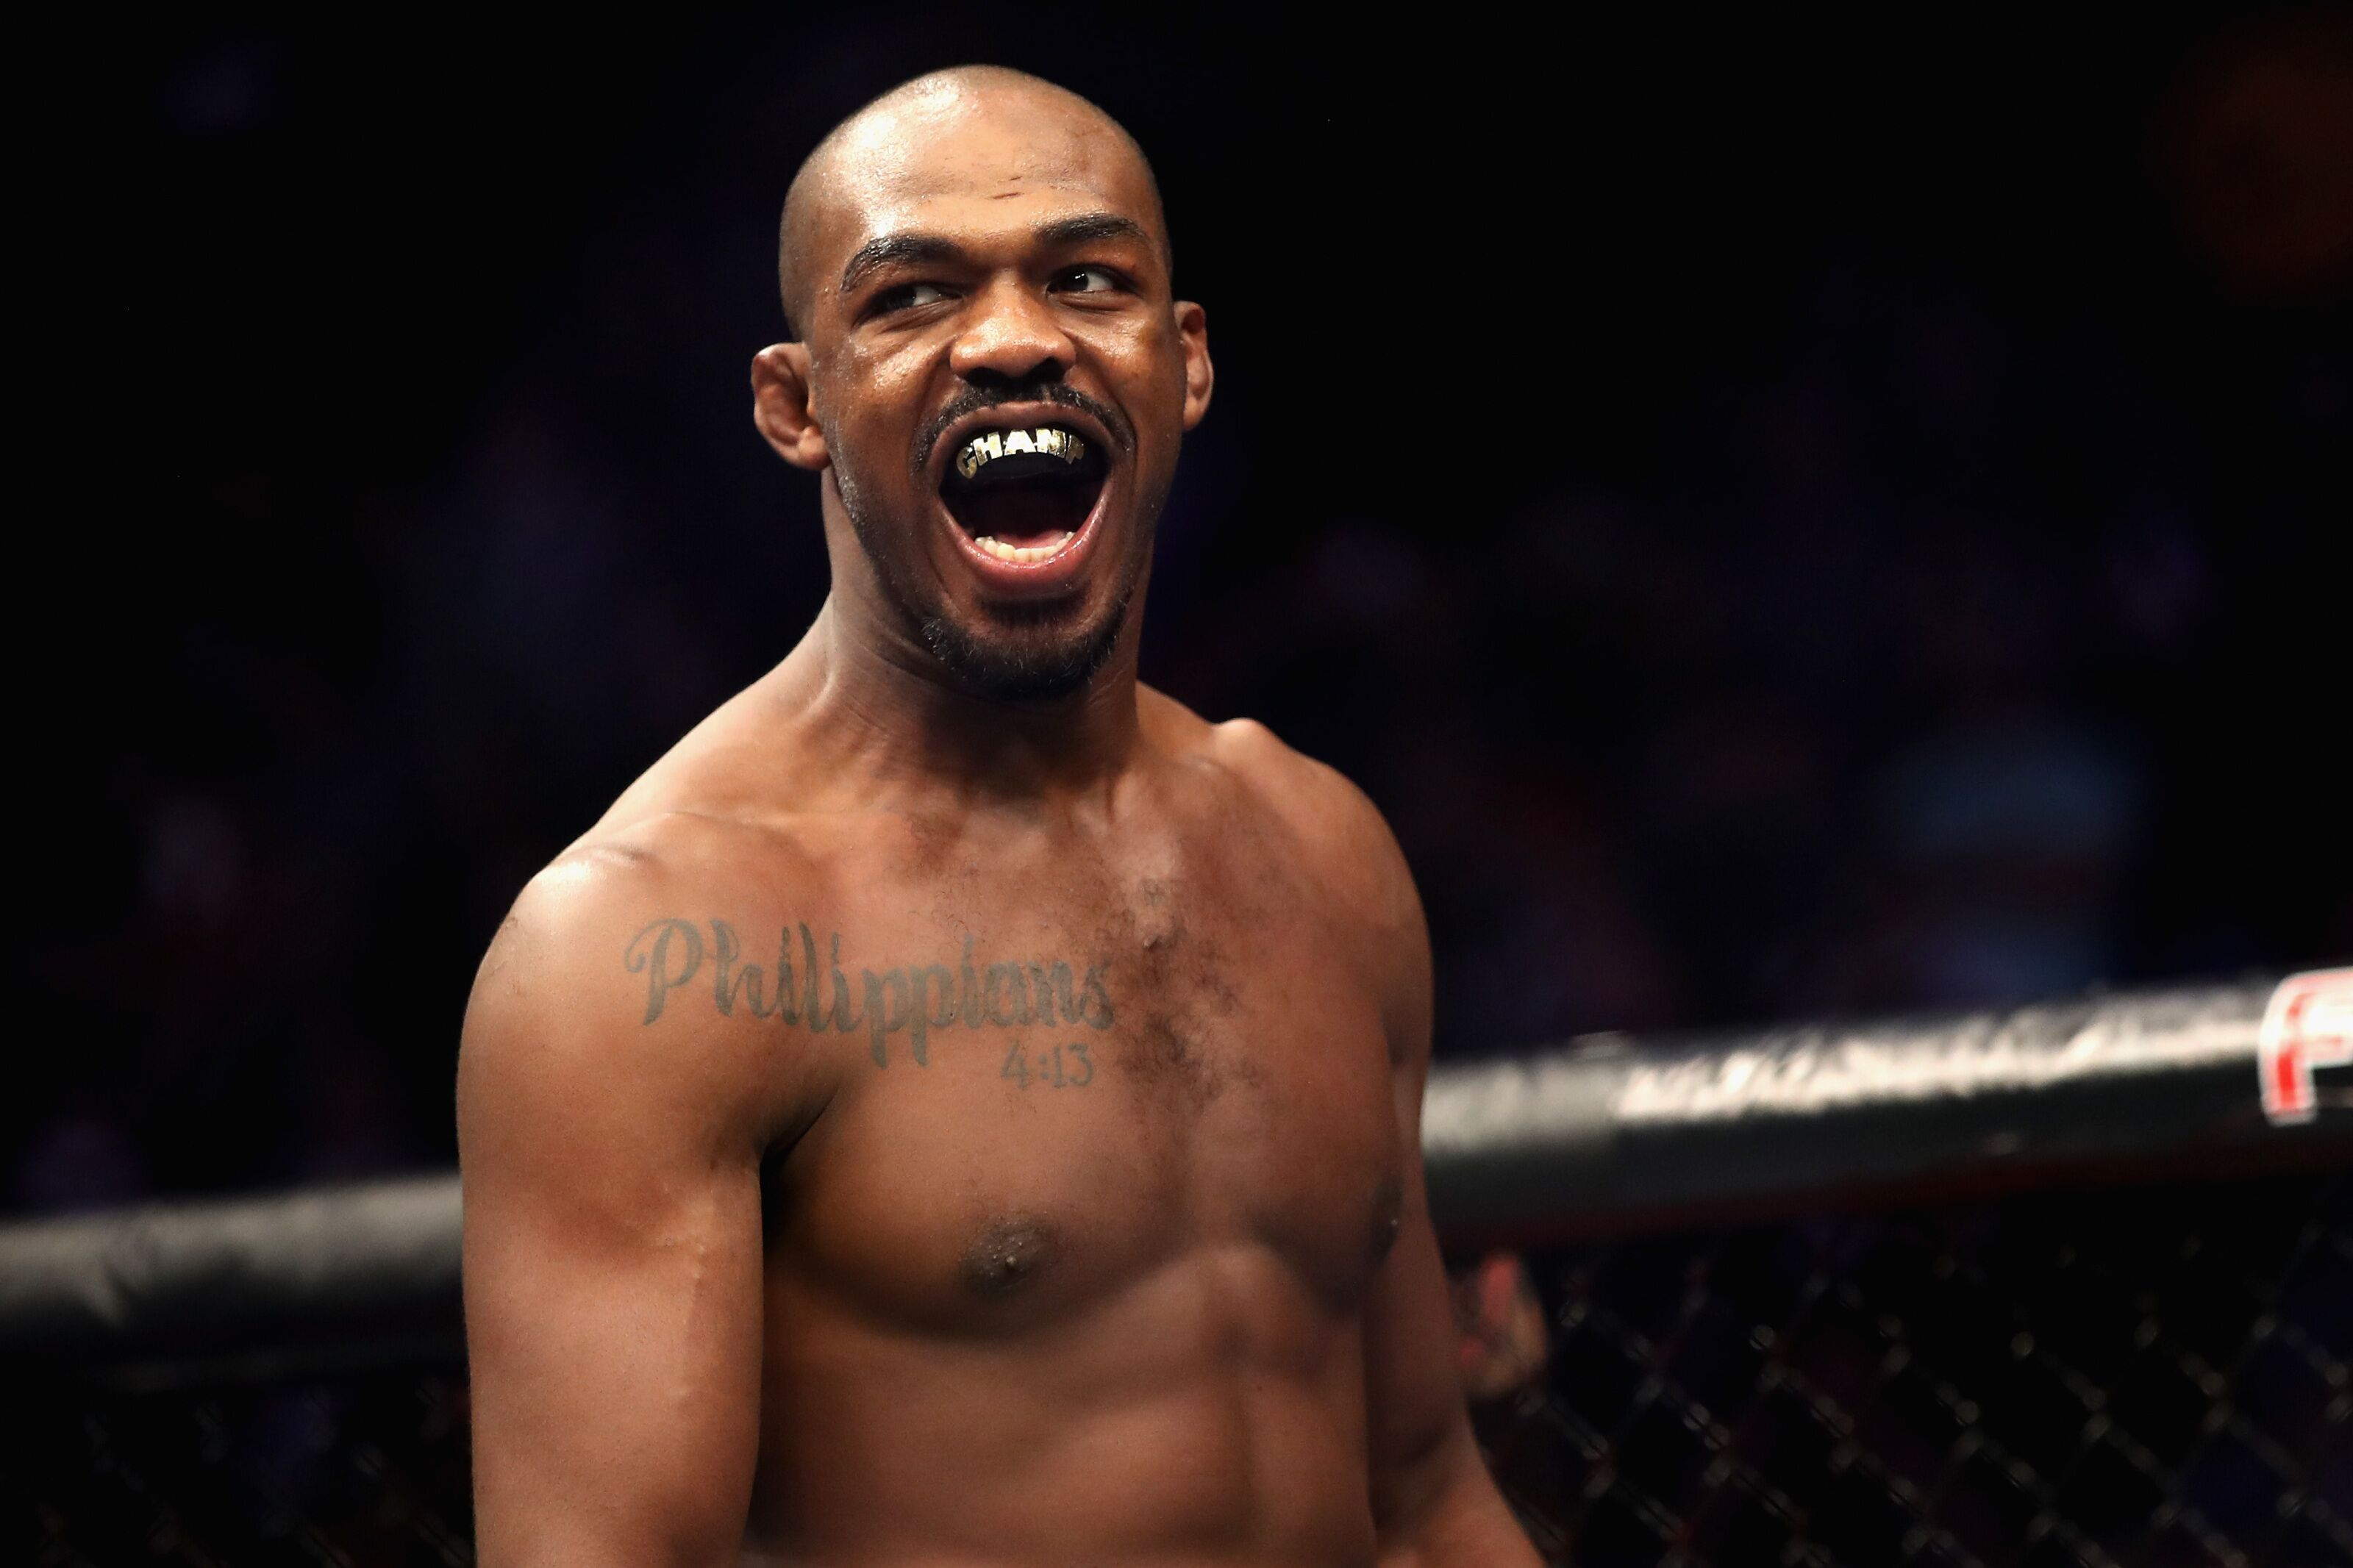 Jon Jones responds to Dominick Reyes call out: 'Been waiting'